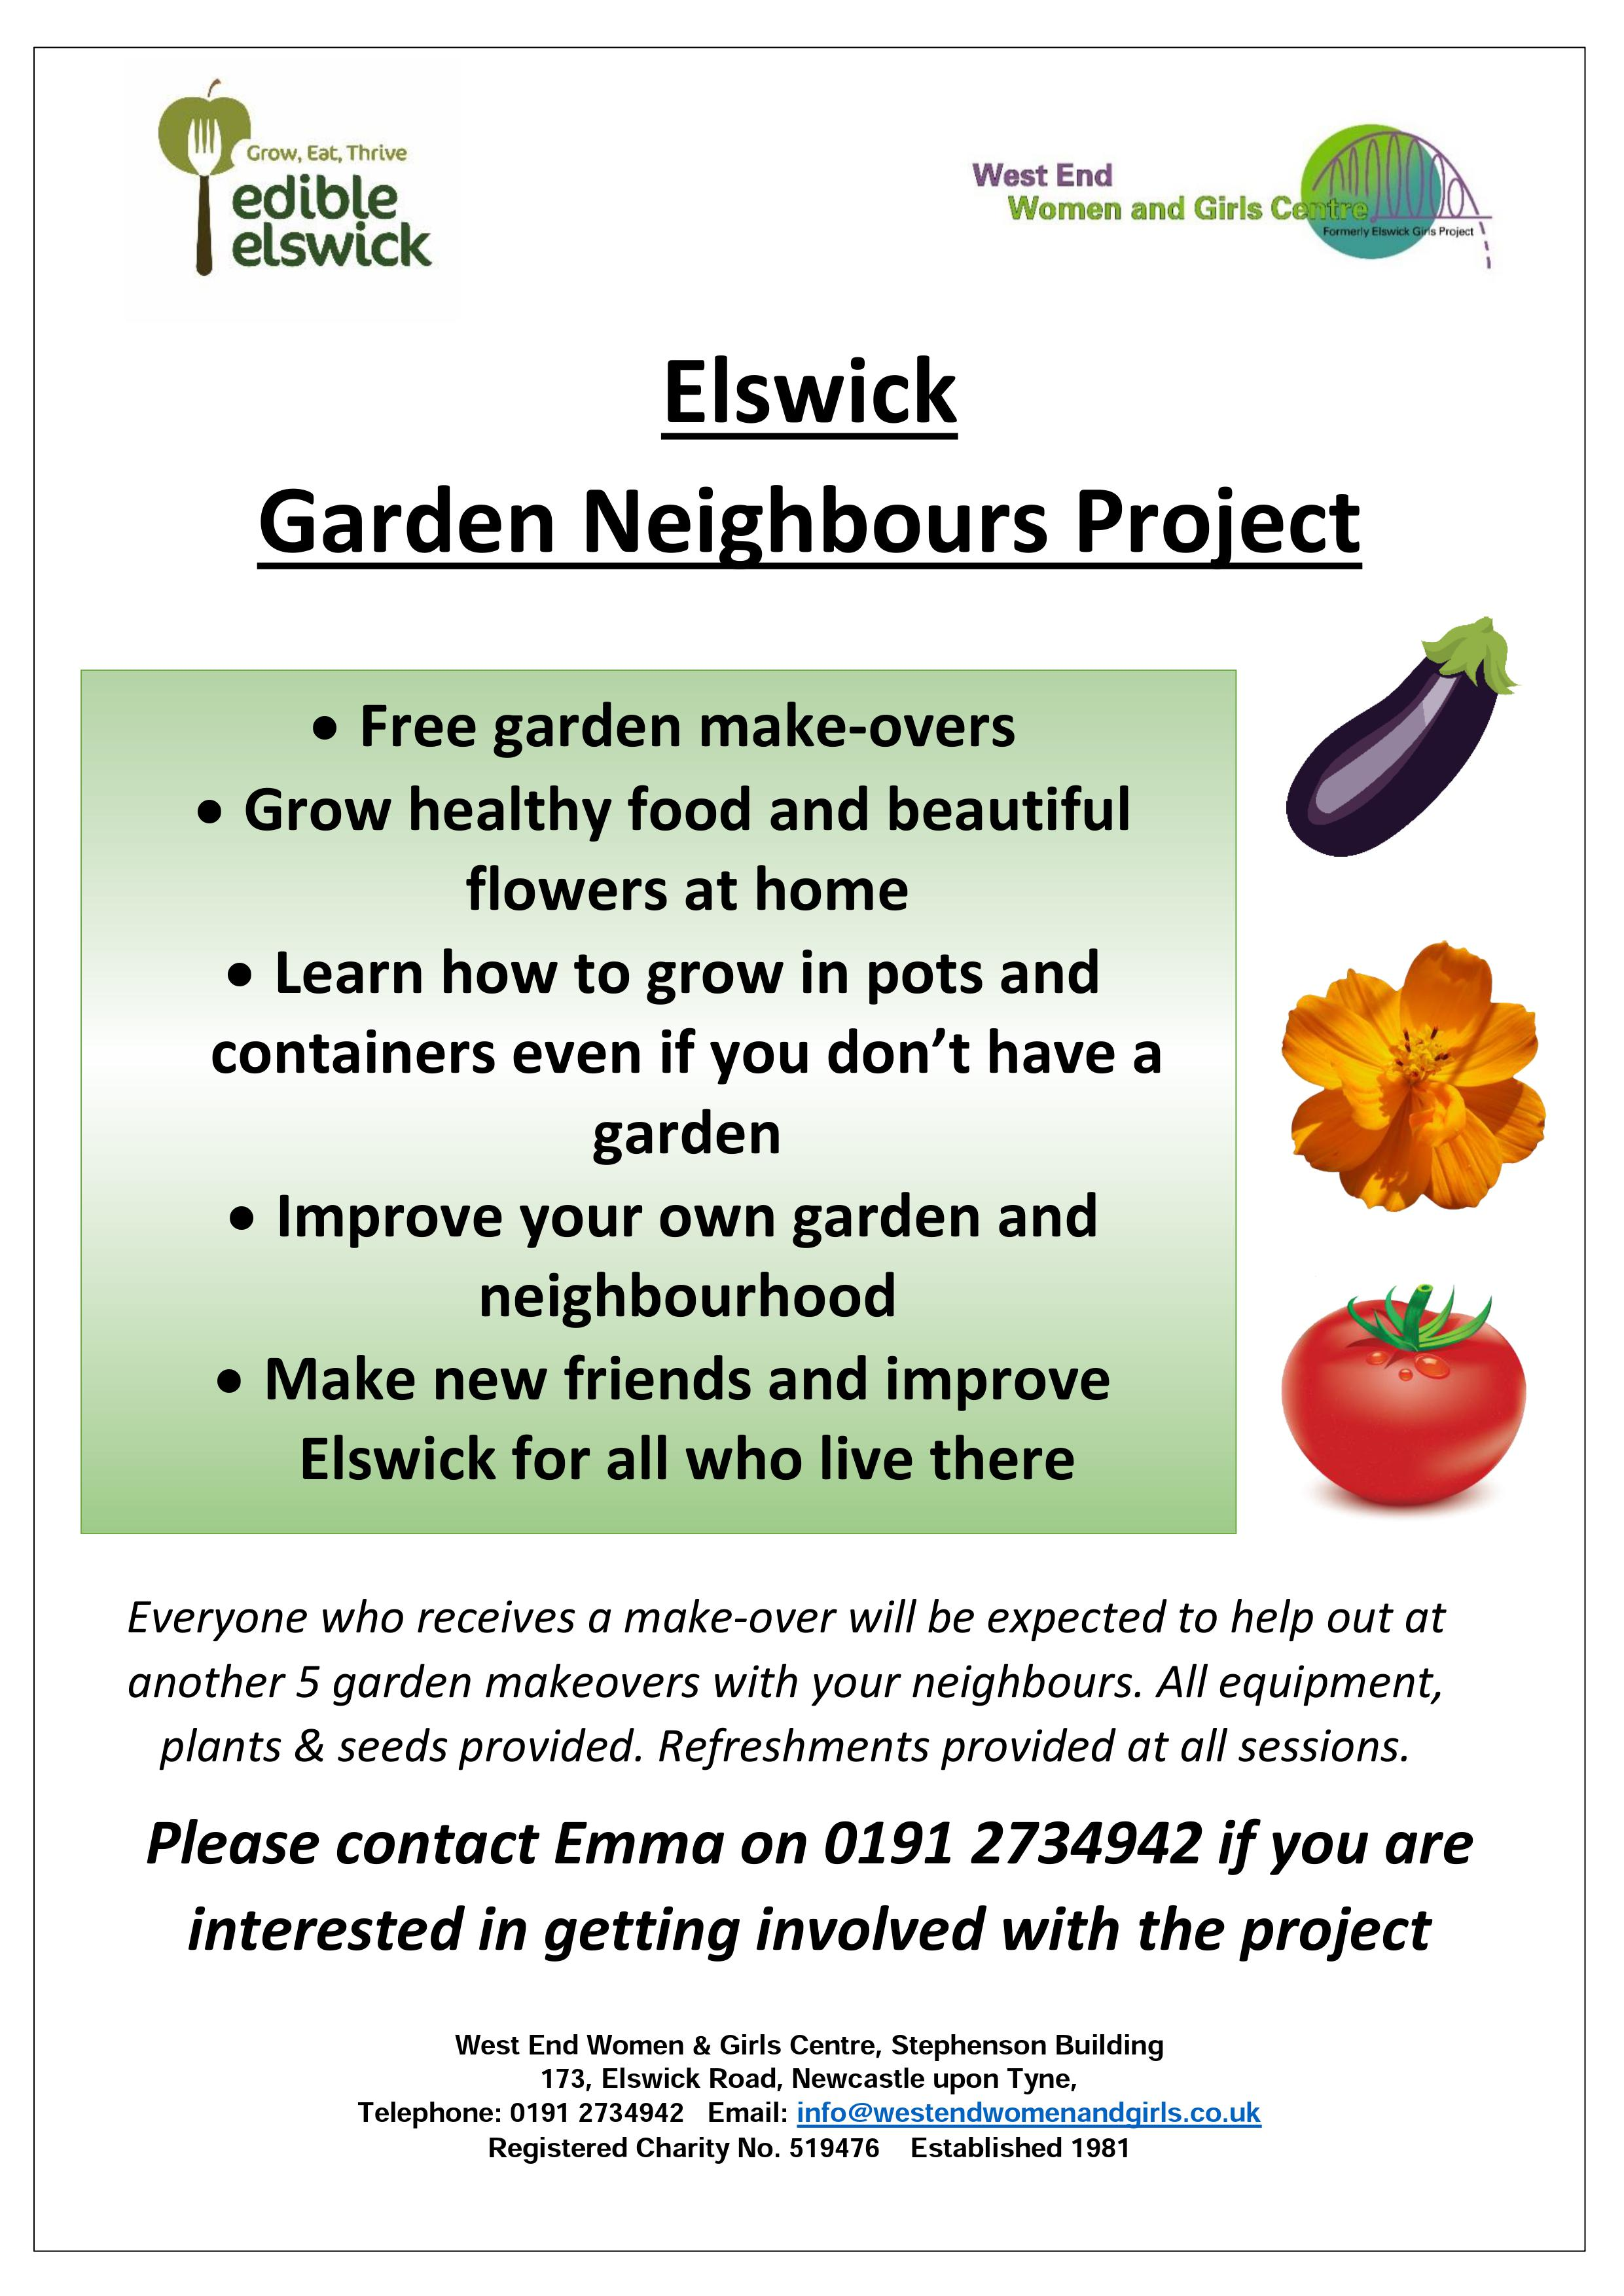 Elswick Garden Neighbours Project- Weekly Sessions - Every Monday 10am-12pm West End residents are welcome to come along and help others with their gardens on the Bentinck and Jubilee Estates, at fun sessions. Mini garden makeovers can include digging over beds, planting new flowers, freshening up hanging baskets, general tidy and more.Have a laugh, get to know others and help make a big difference in a short space of time! If you'd like to find out more, get in touch with Emma or Johurun via email hello@edibleelswick.co.uk or call 0191 2734942.